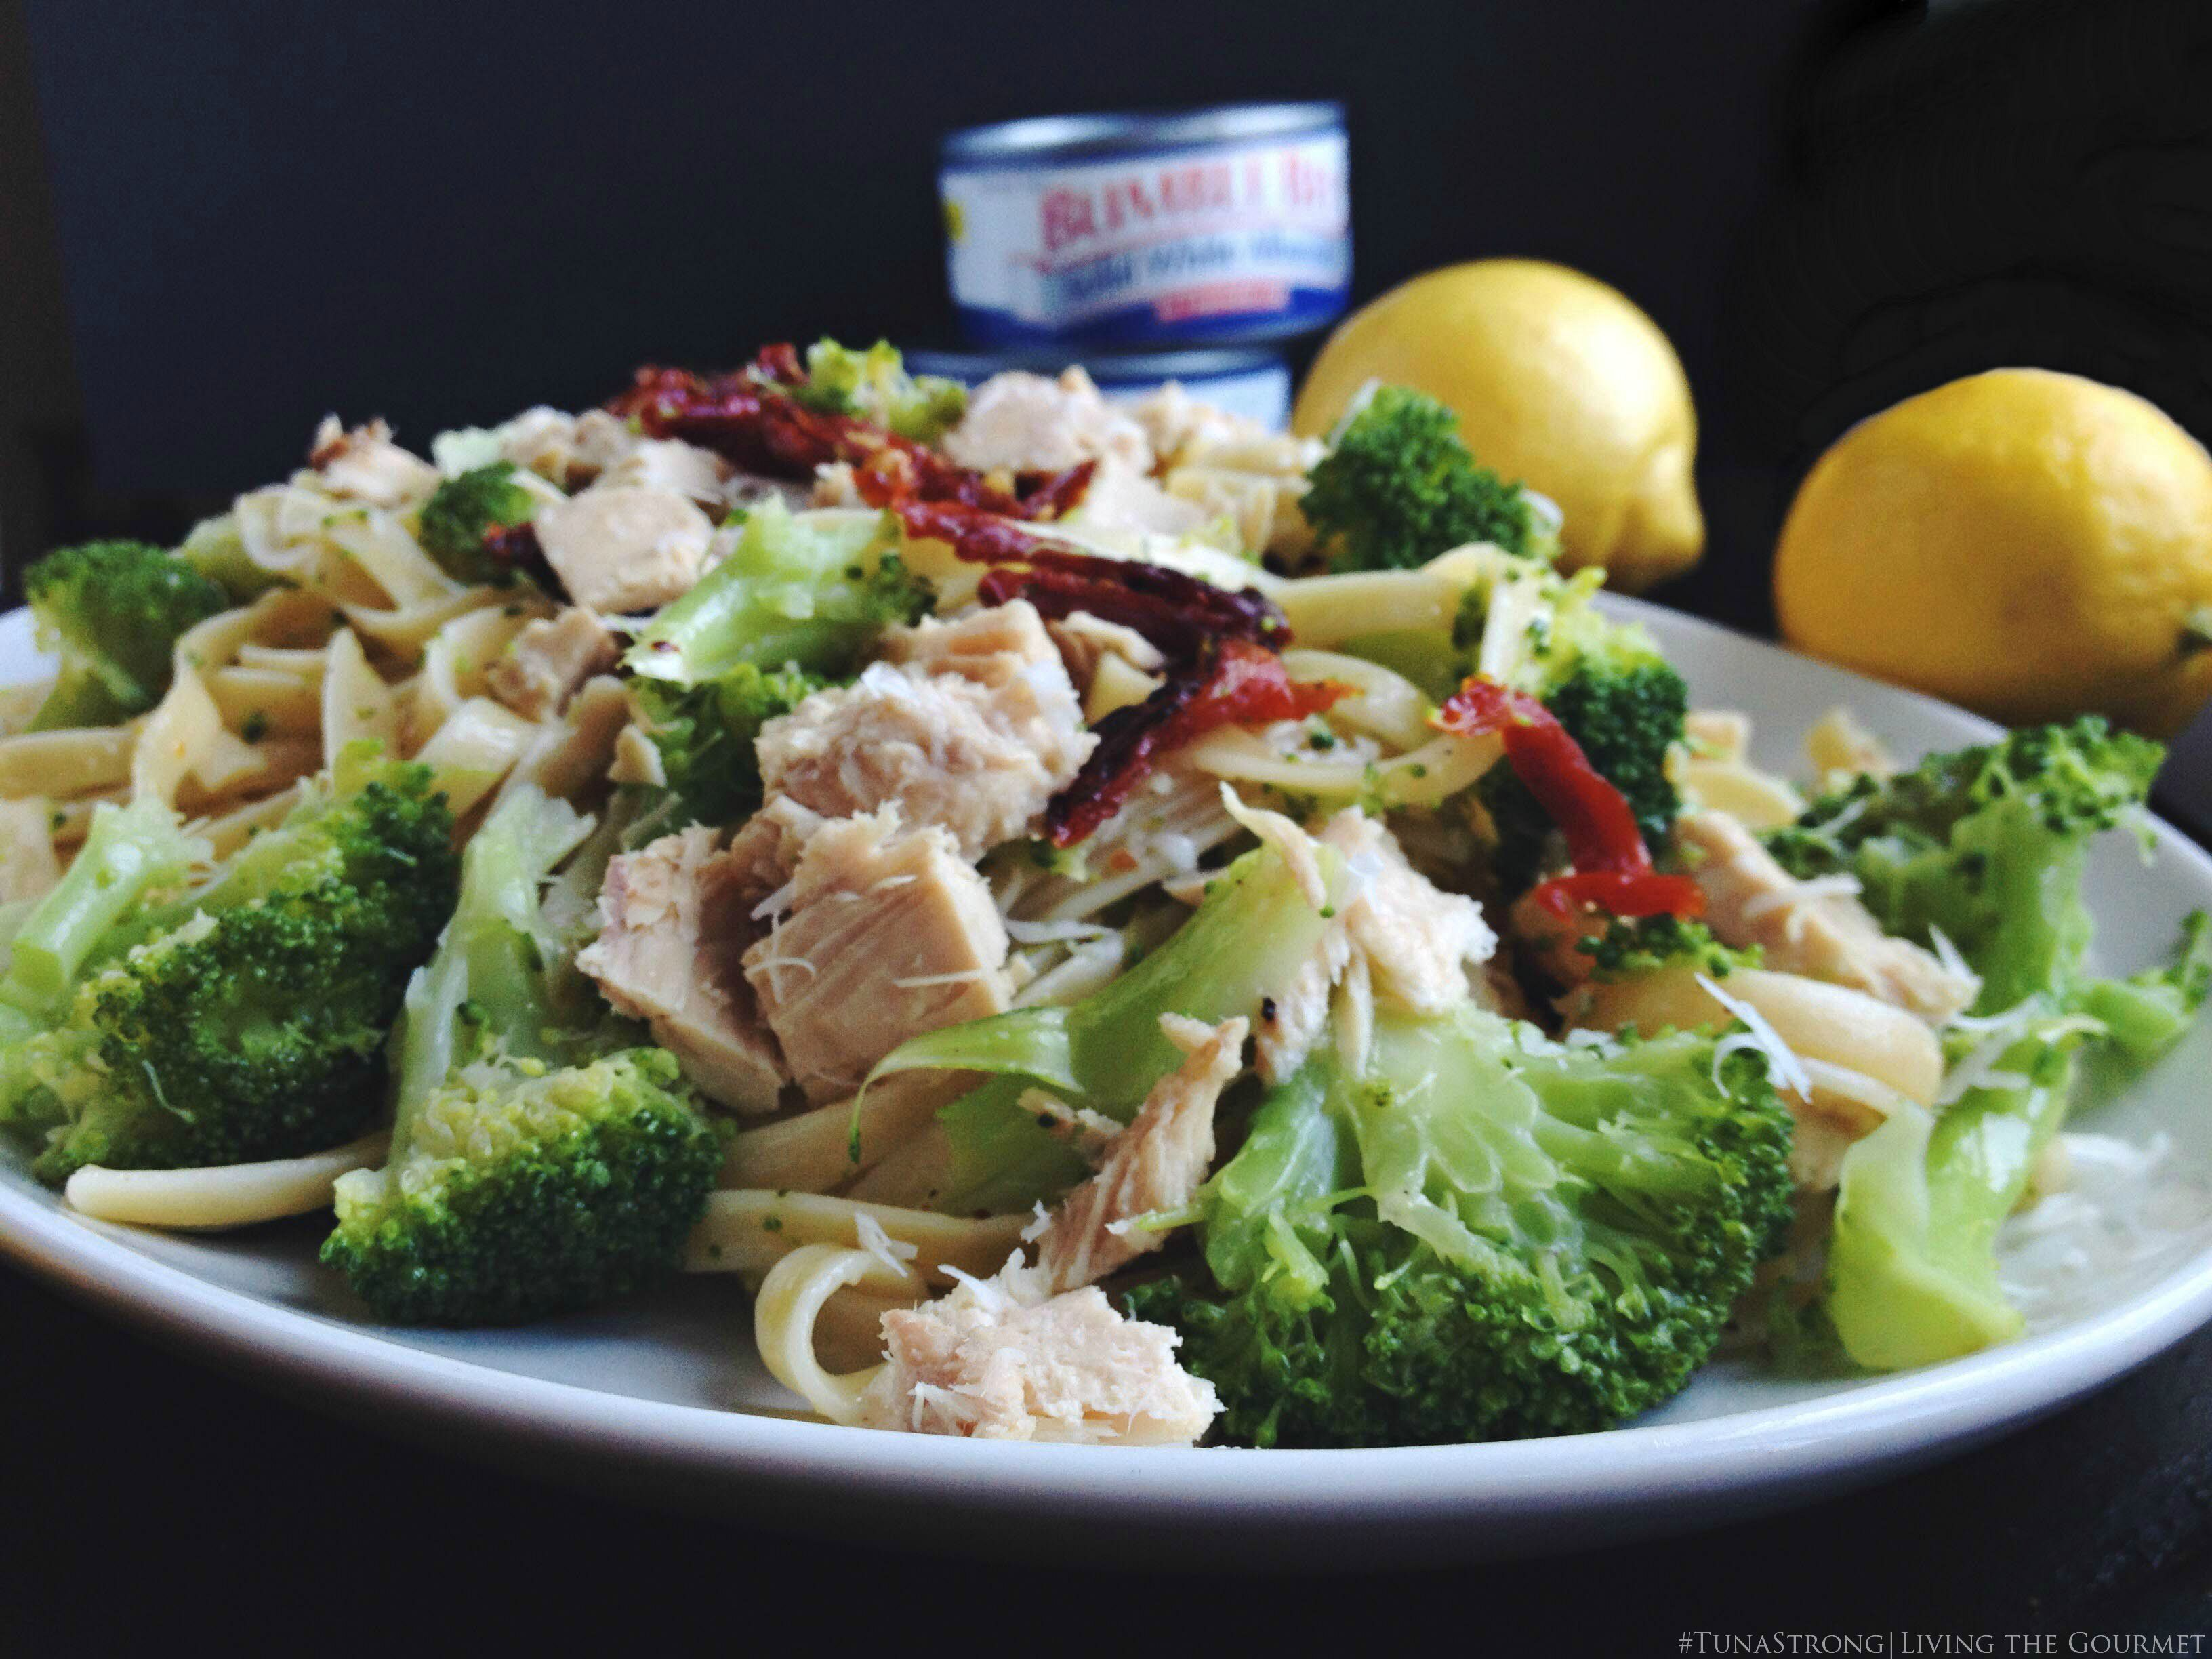 Living the Gourmet: Broccoli and Tuna Fettuccine | #TunaStrong #CG